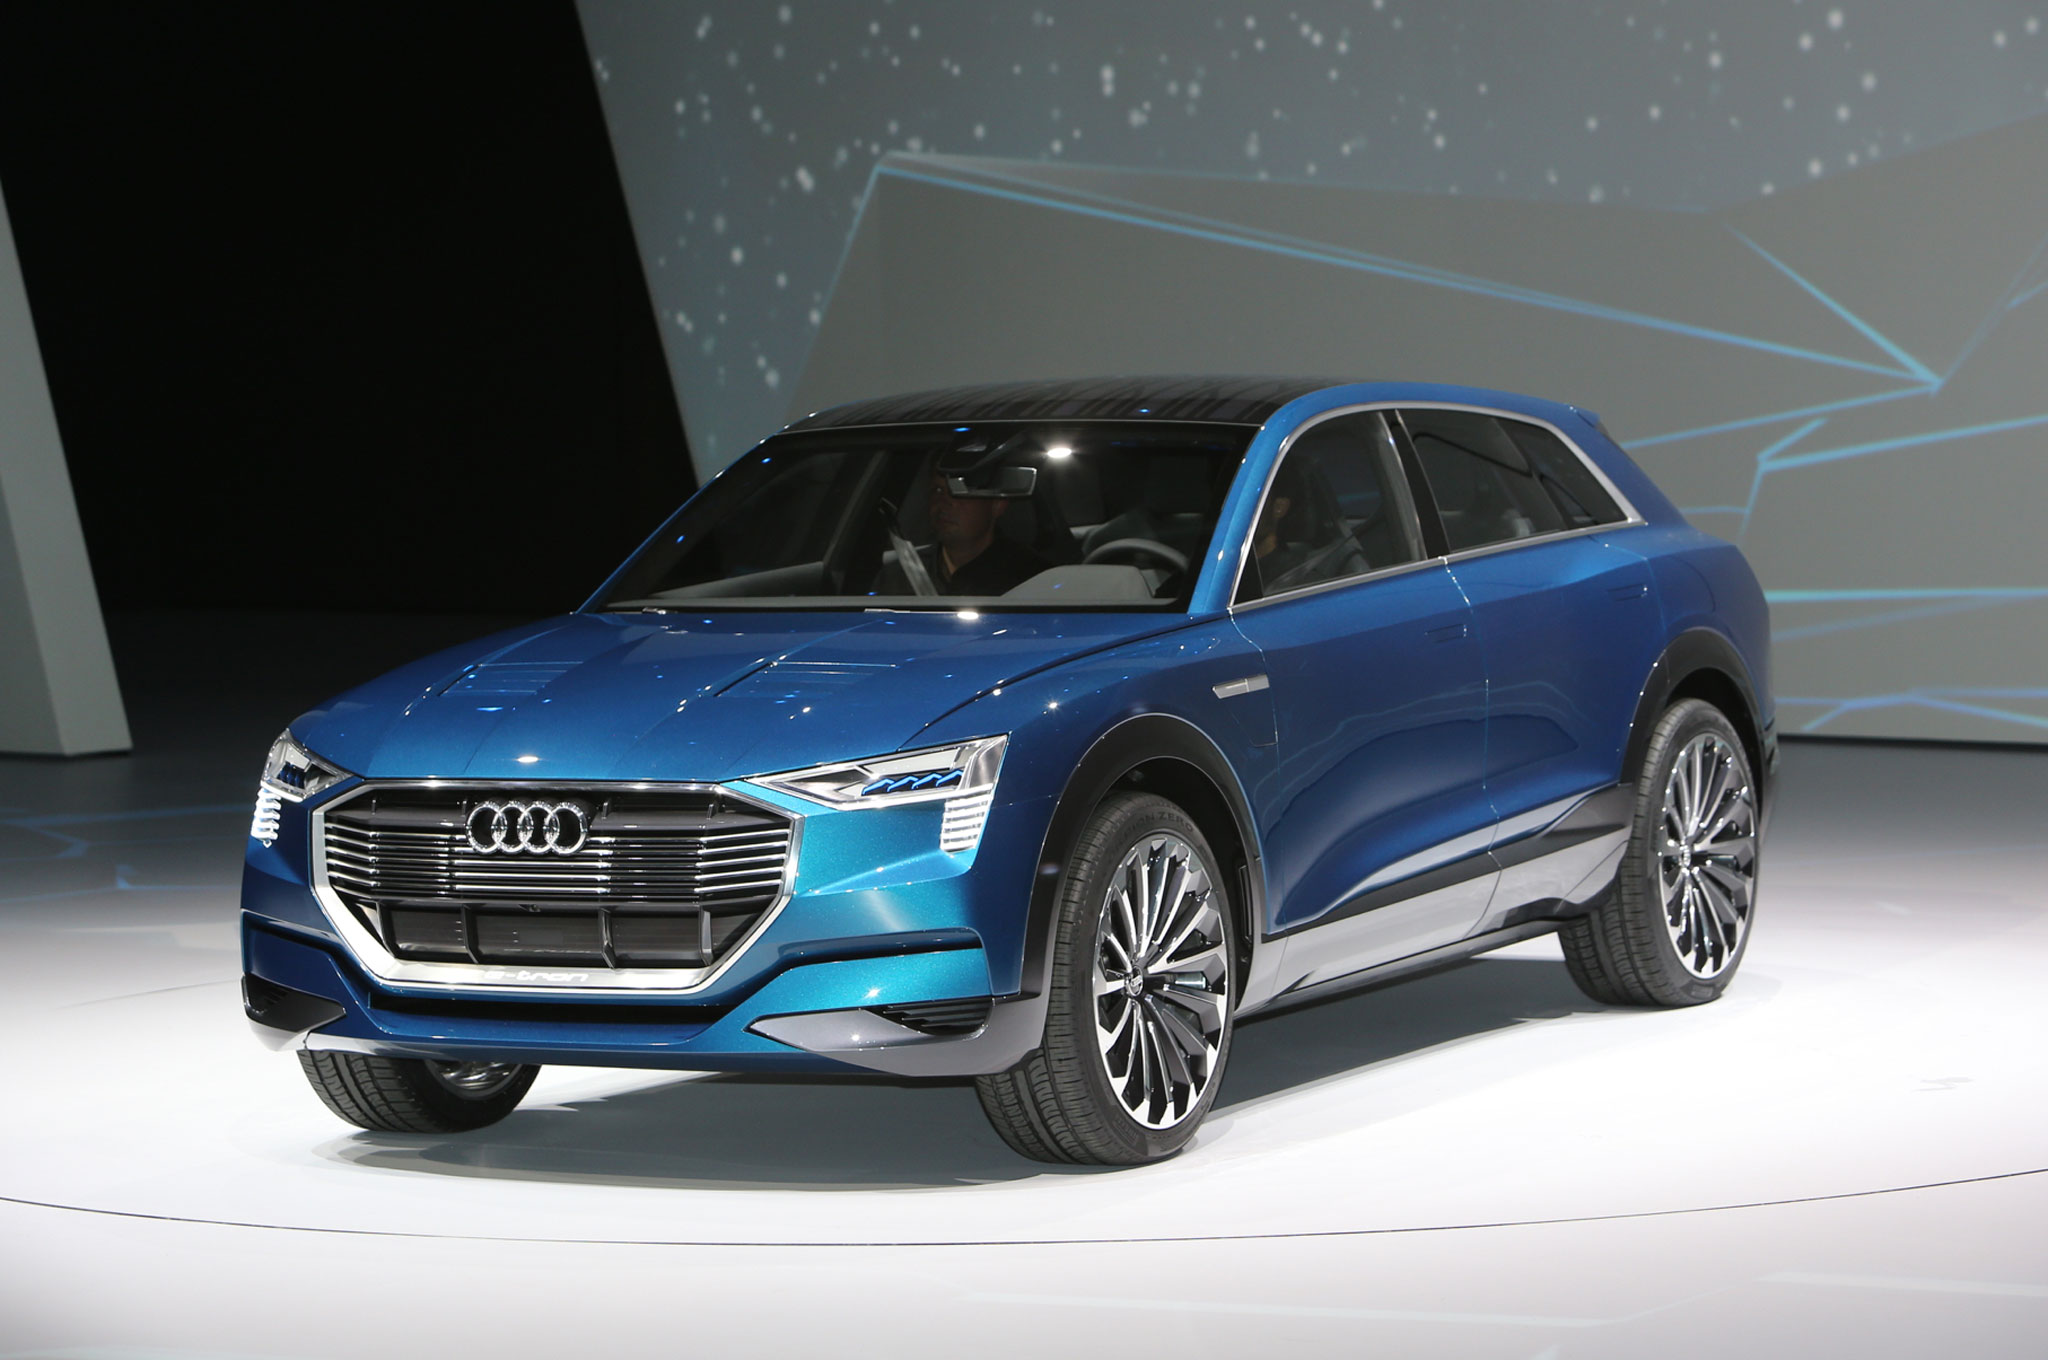 2018 audi electric suv. plain audi audi  on 2018 audi electric suv 2